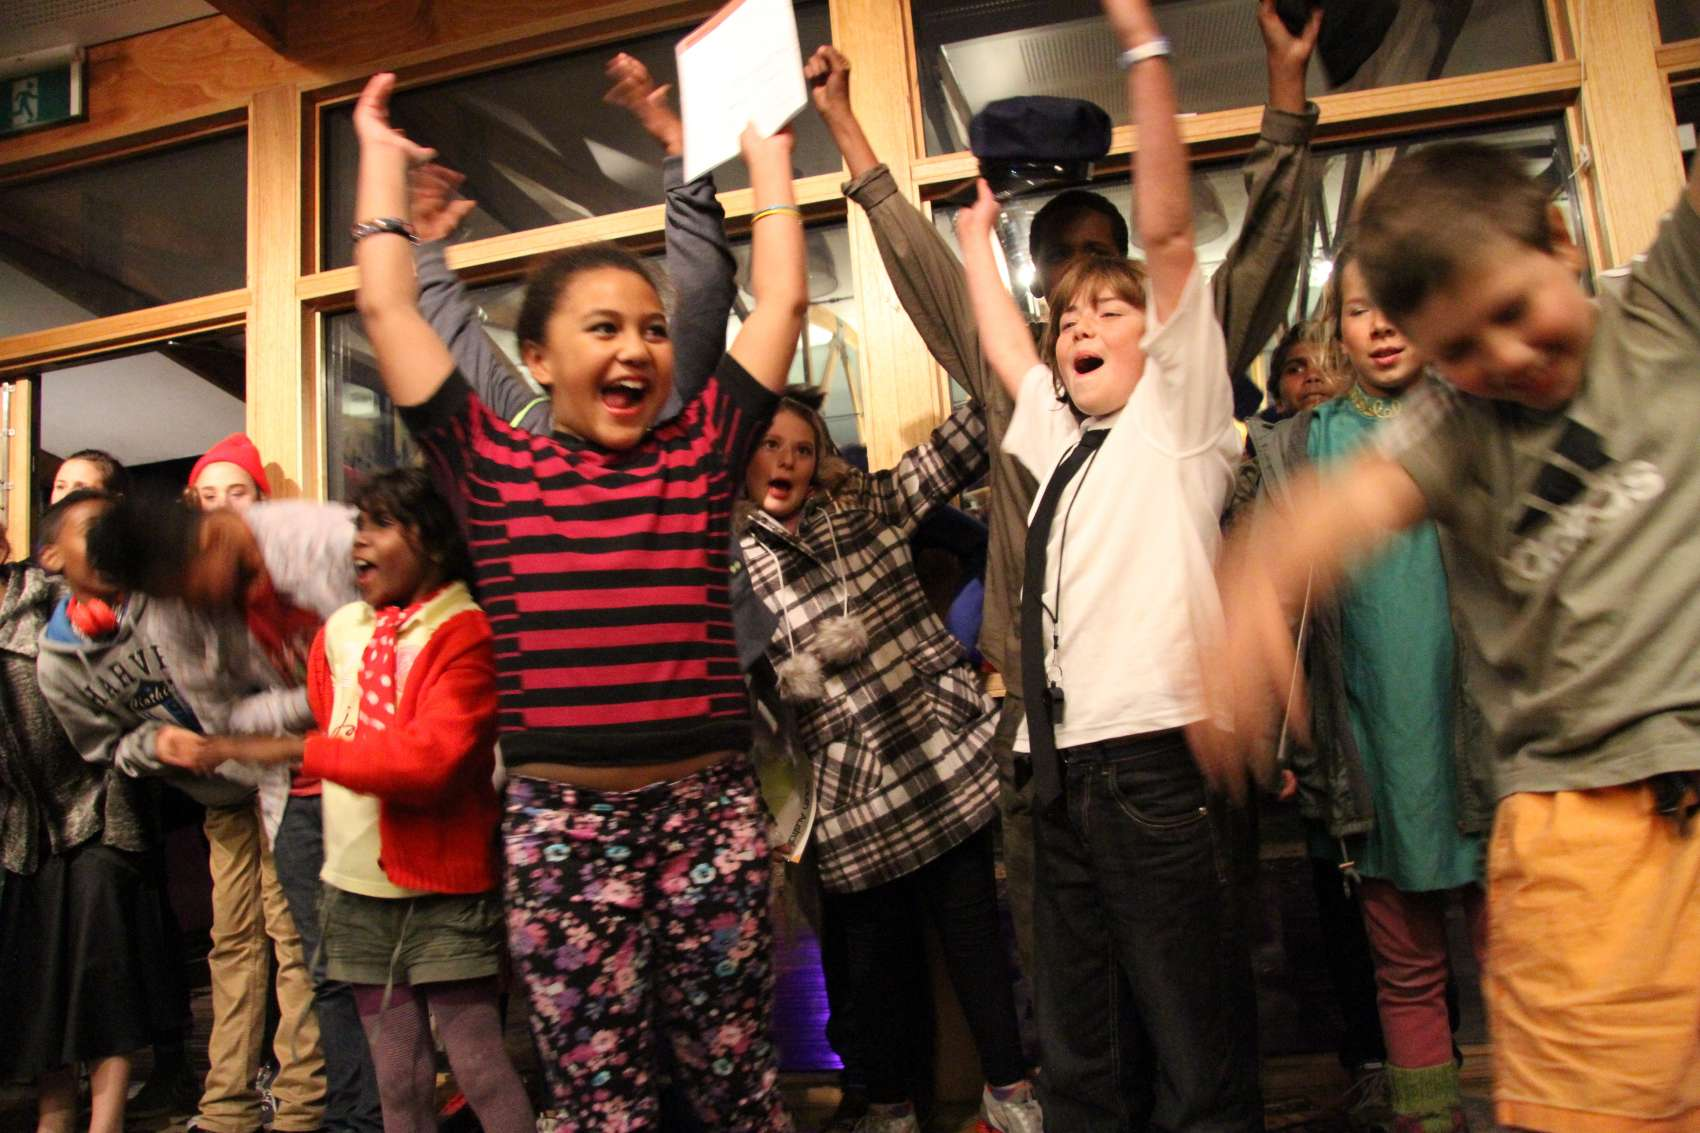 Image of children with raised arms celebrating